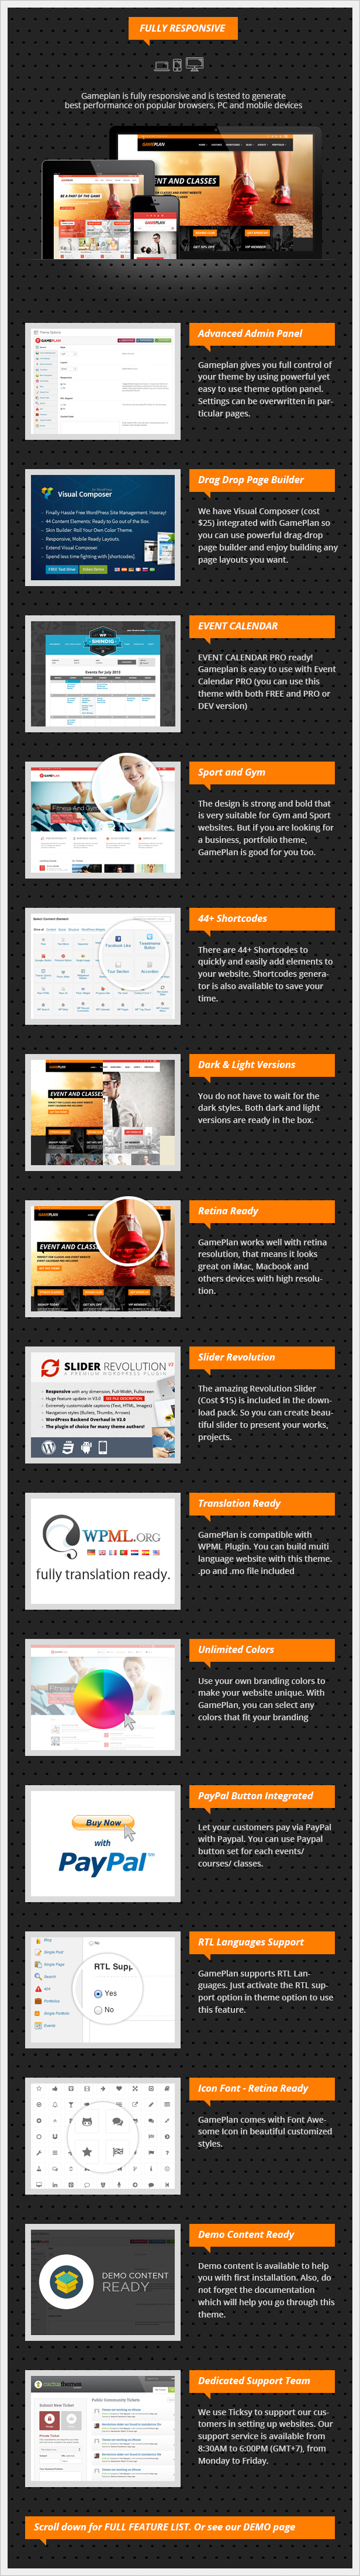 Gameplan - Event and Gym Fitness WordPress Theme - 9